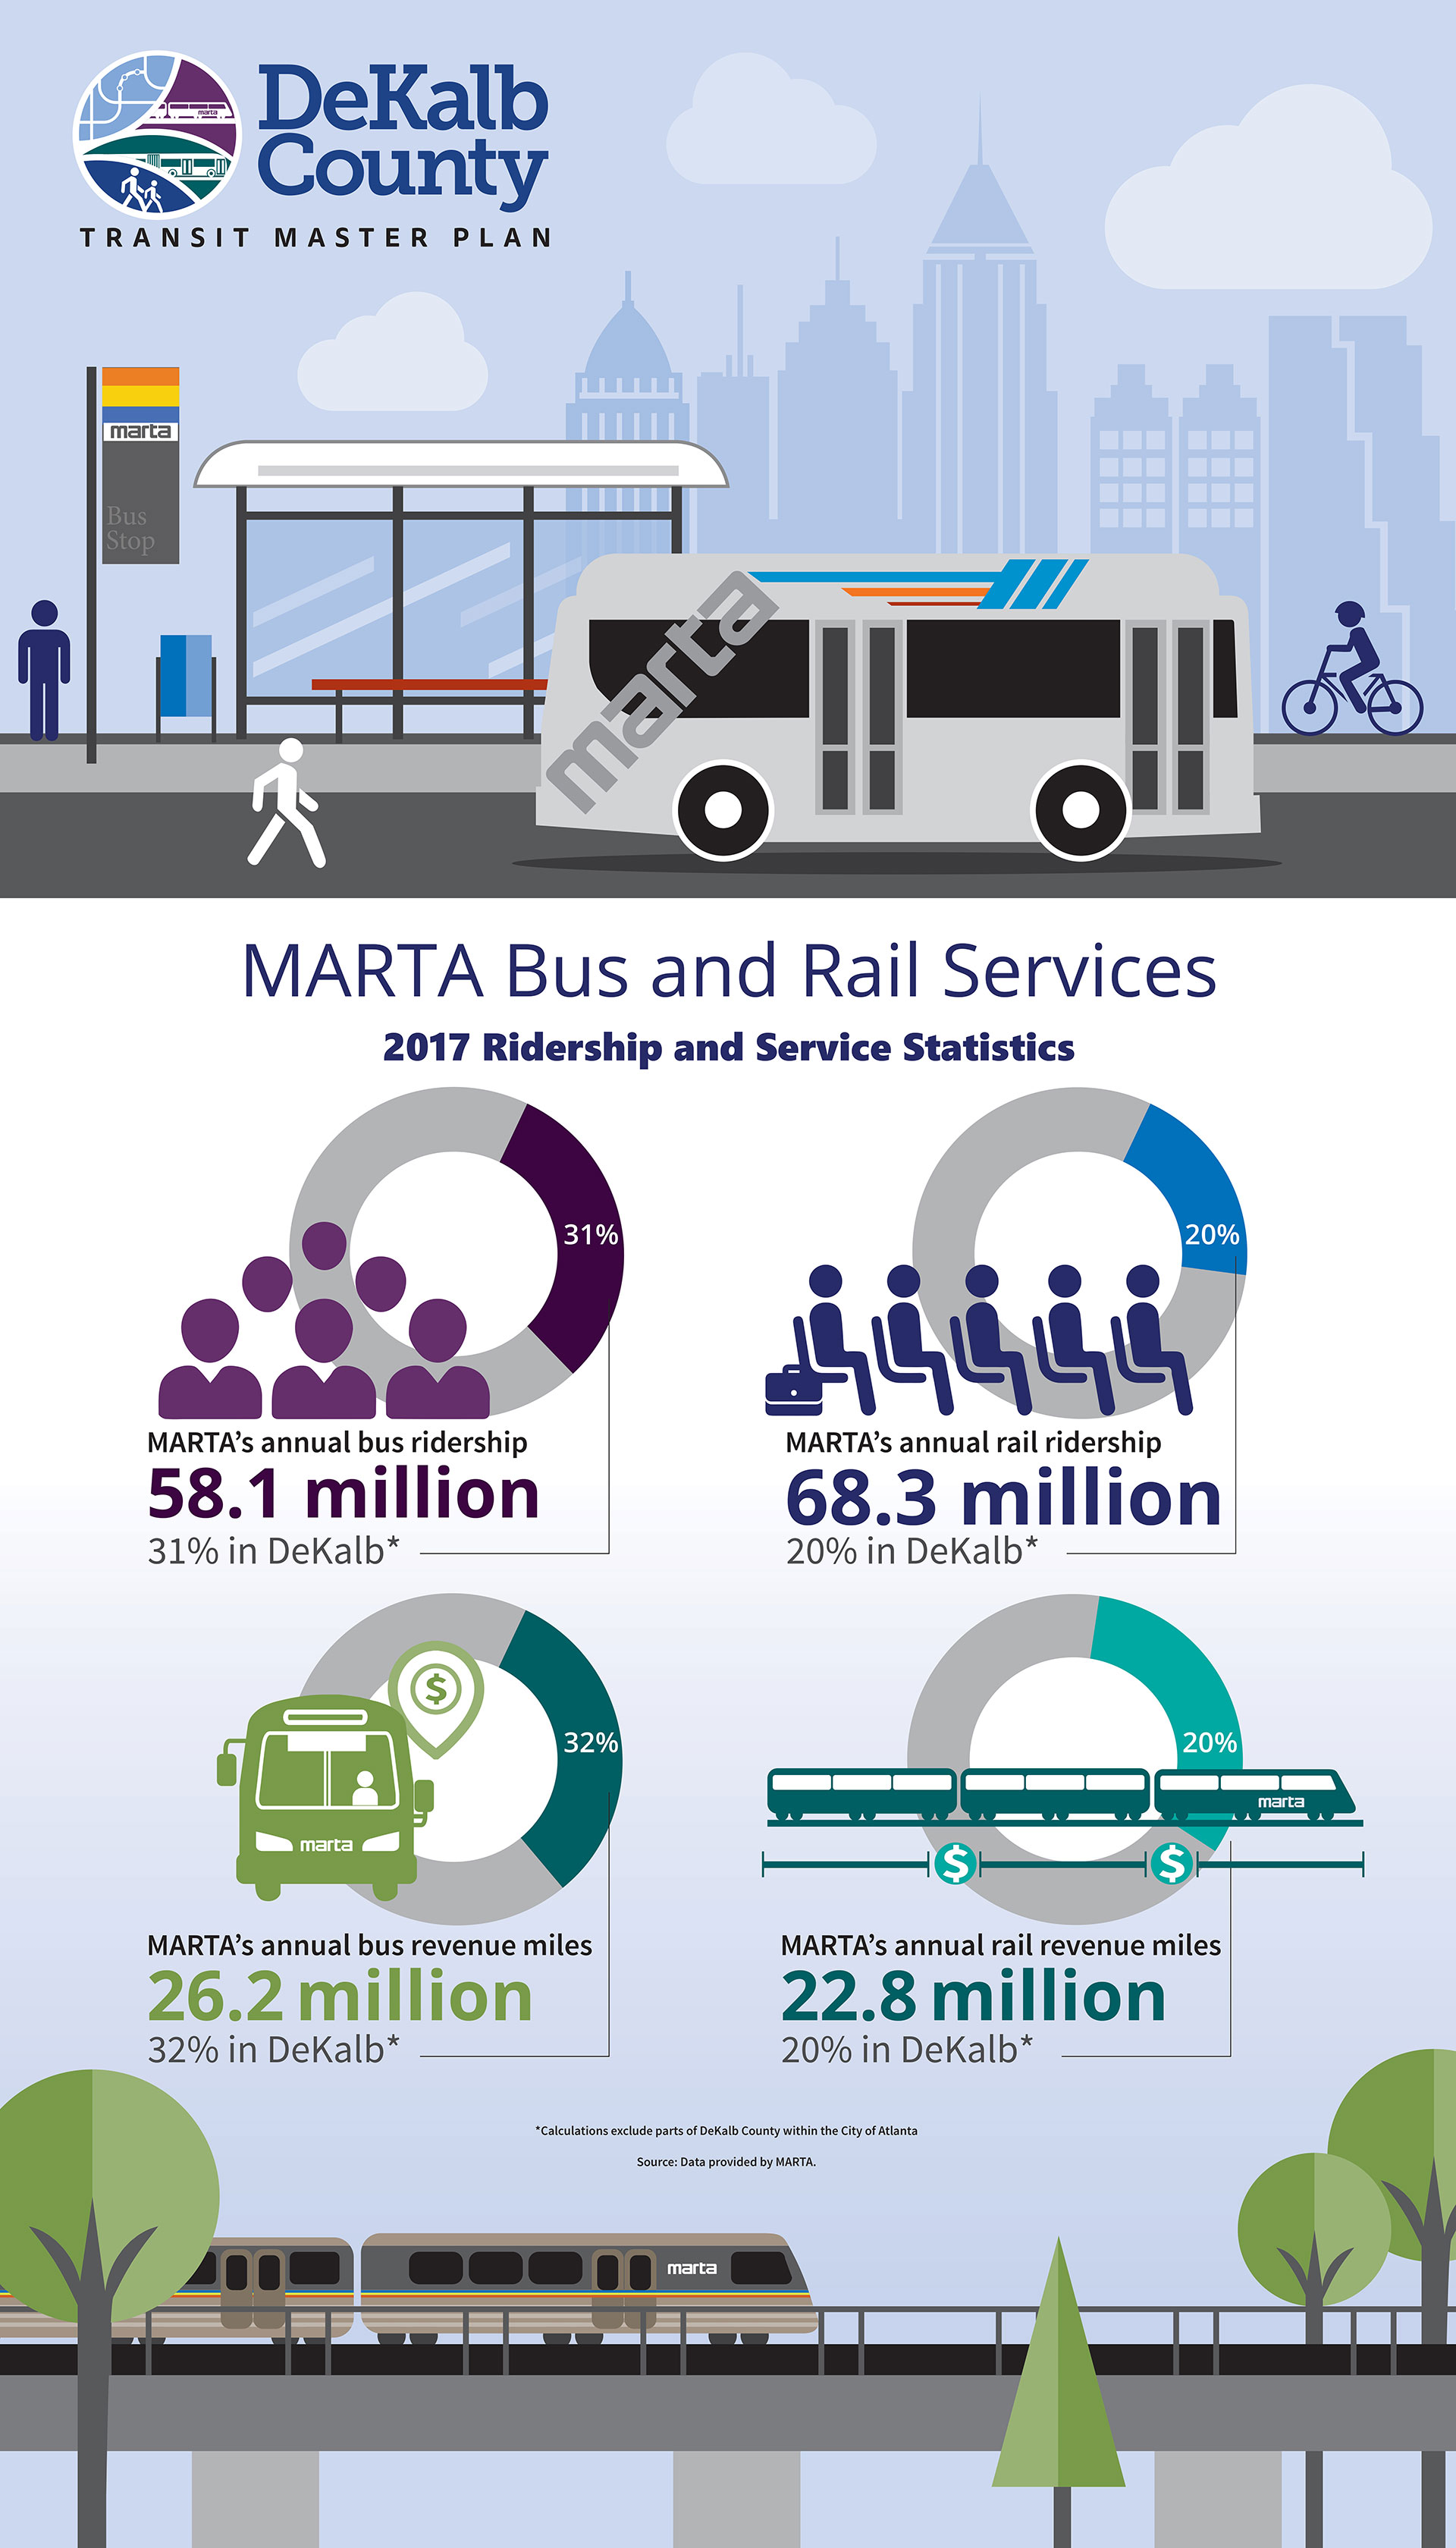 MARTA Bus and Rial Services